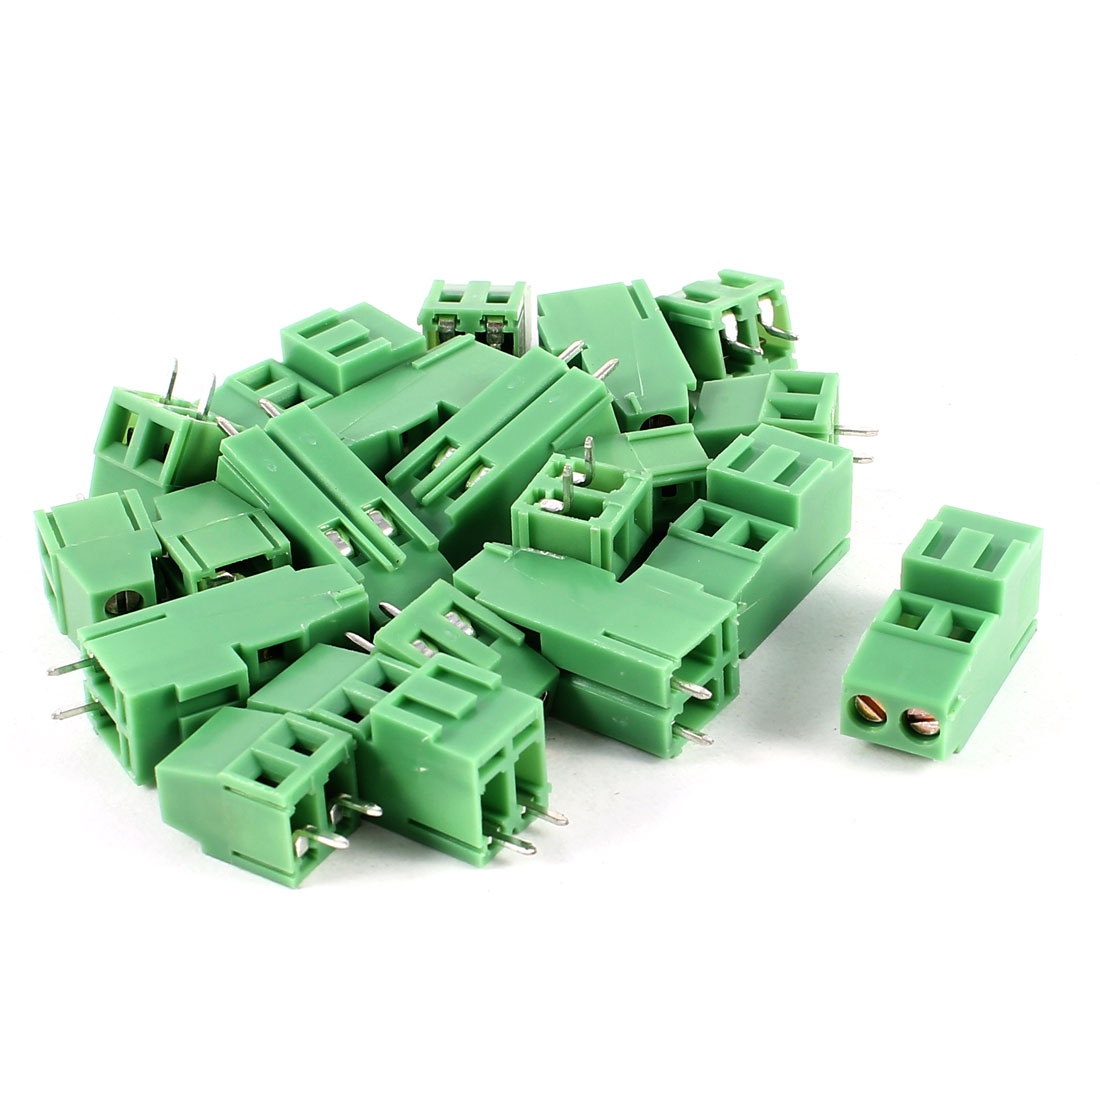 10 Pcs 2 Terminals 5mm Pitch PCB Screw Terminal Block Connector Set 300V 10A AWG24-12